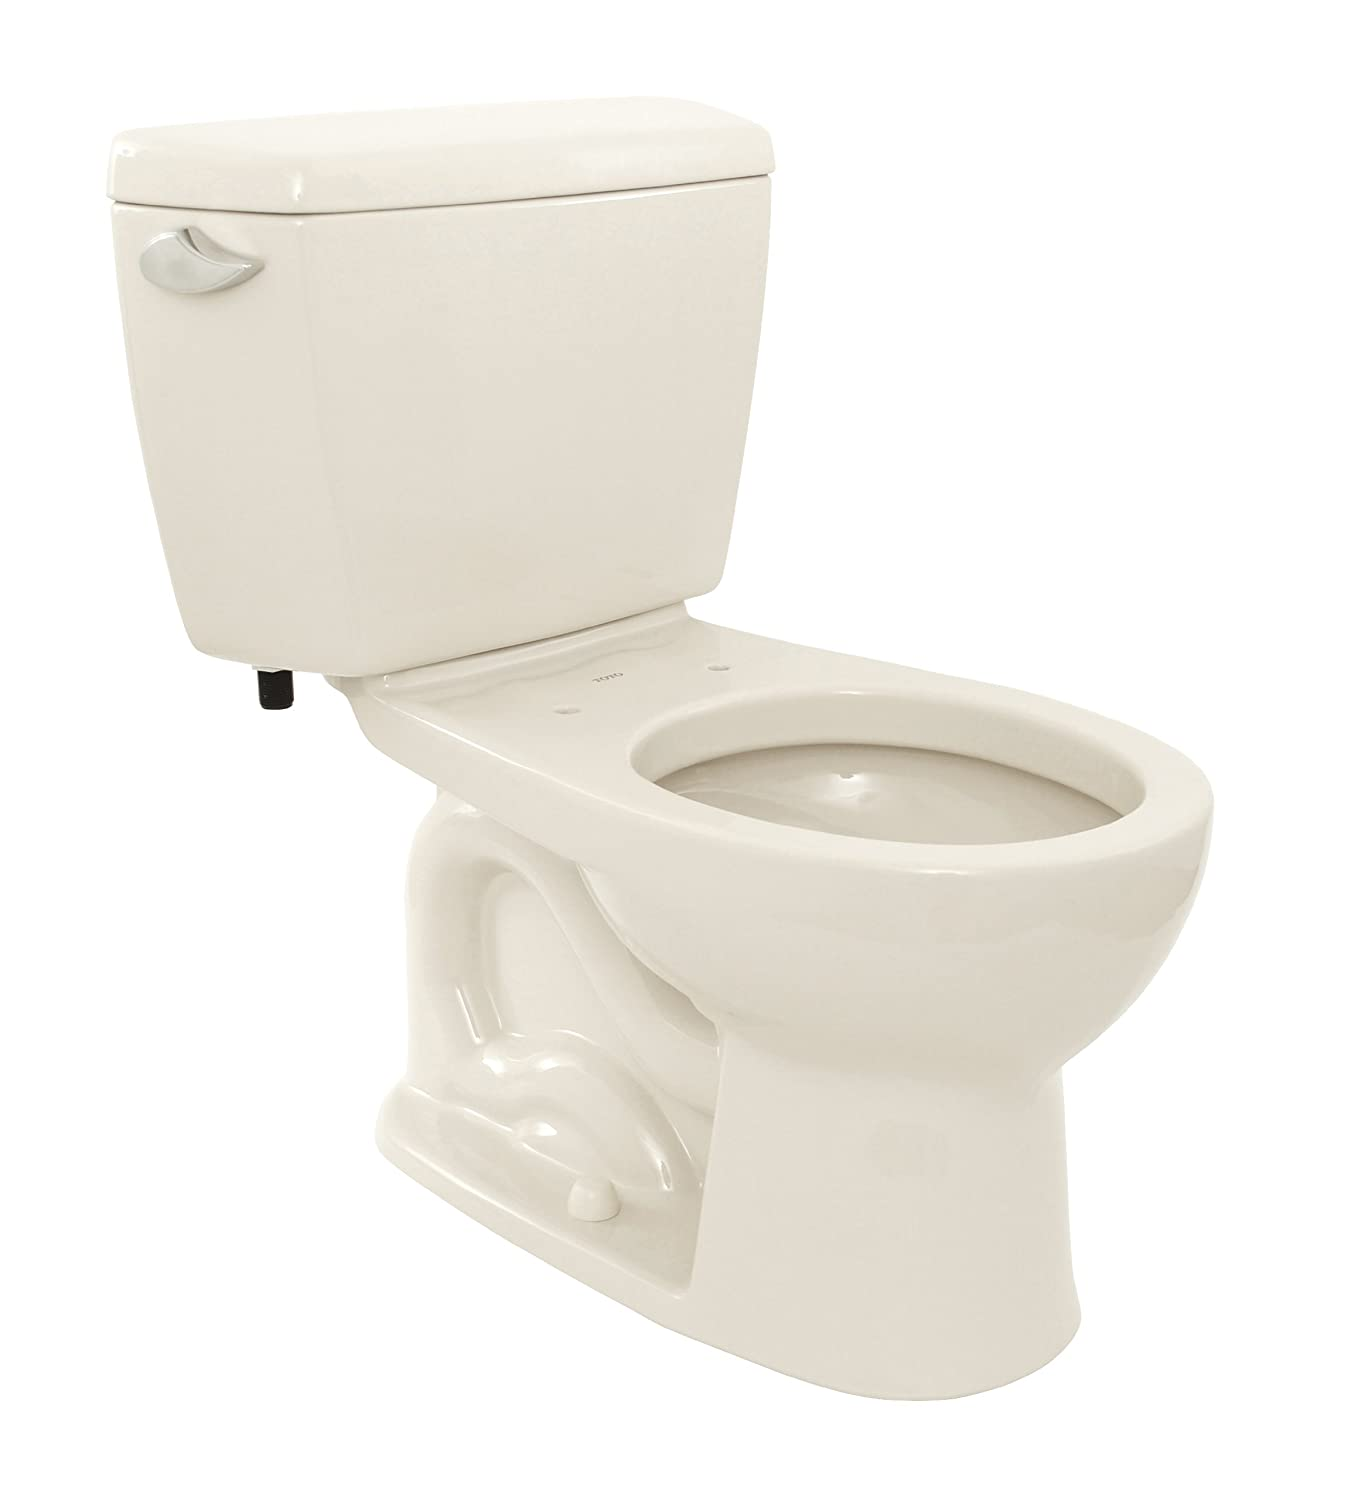 Toto Eco Drake 1.28 GPF Two-Piece Toilet CST743E#01 Cotton ...